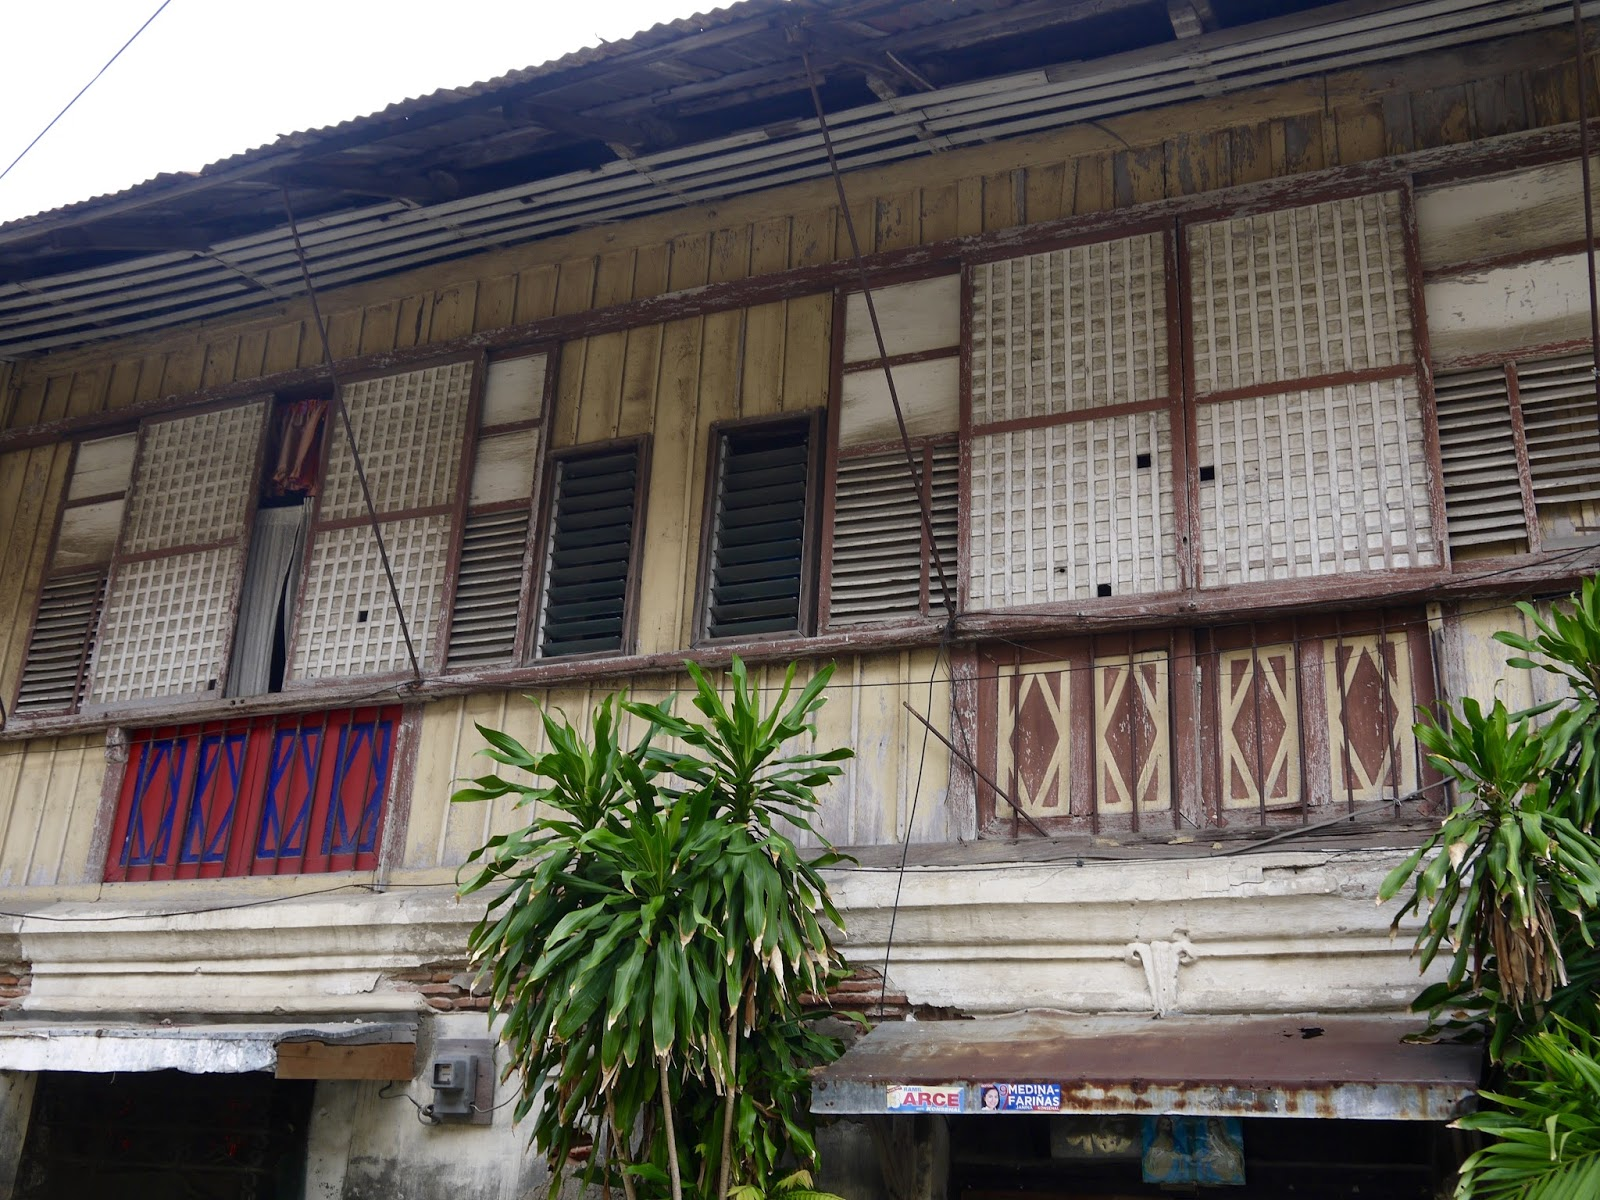 Quema House Vigan, Adrian Yekkes: Vigan - part three of a Philippines journey